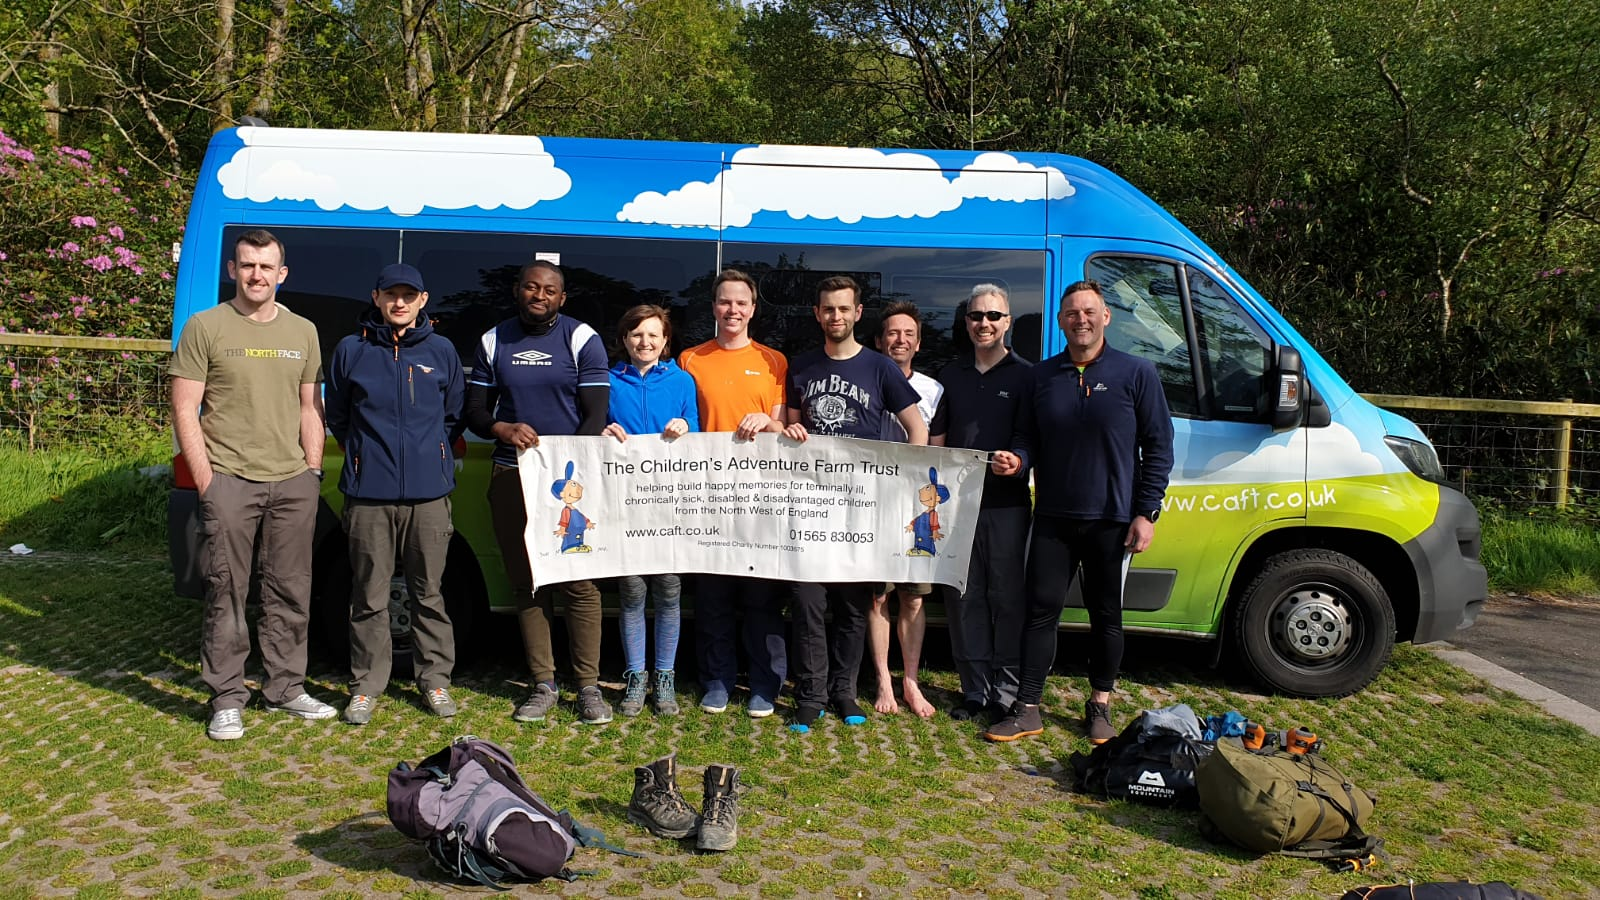 Altrincham company scales new heights for children's charity